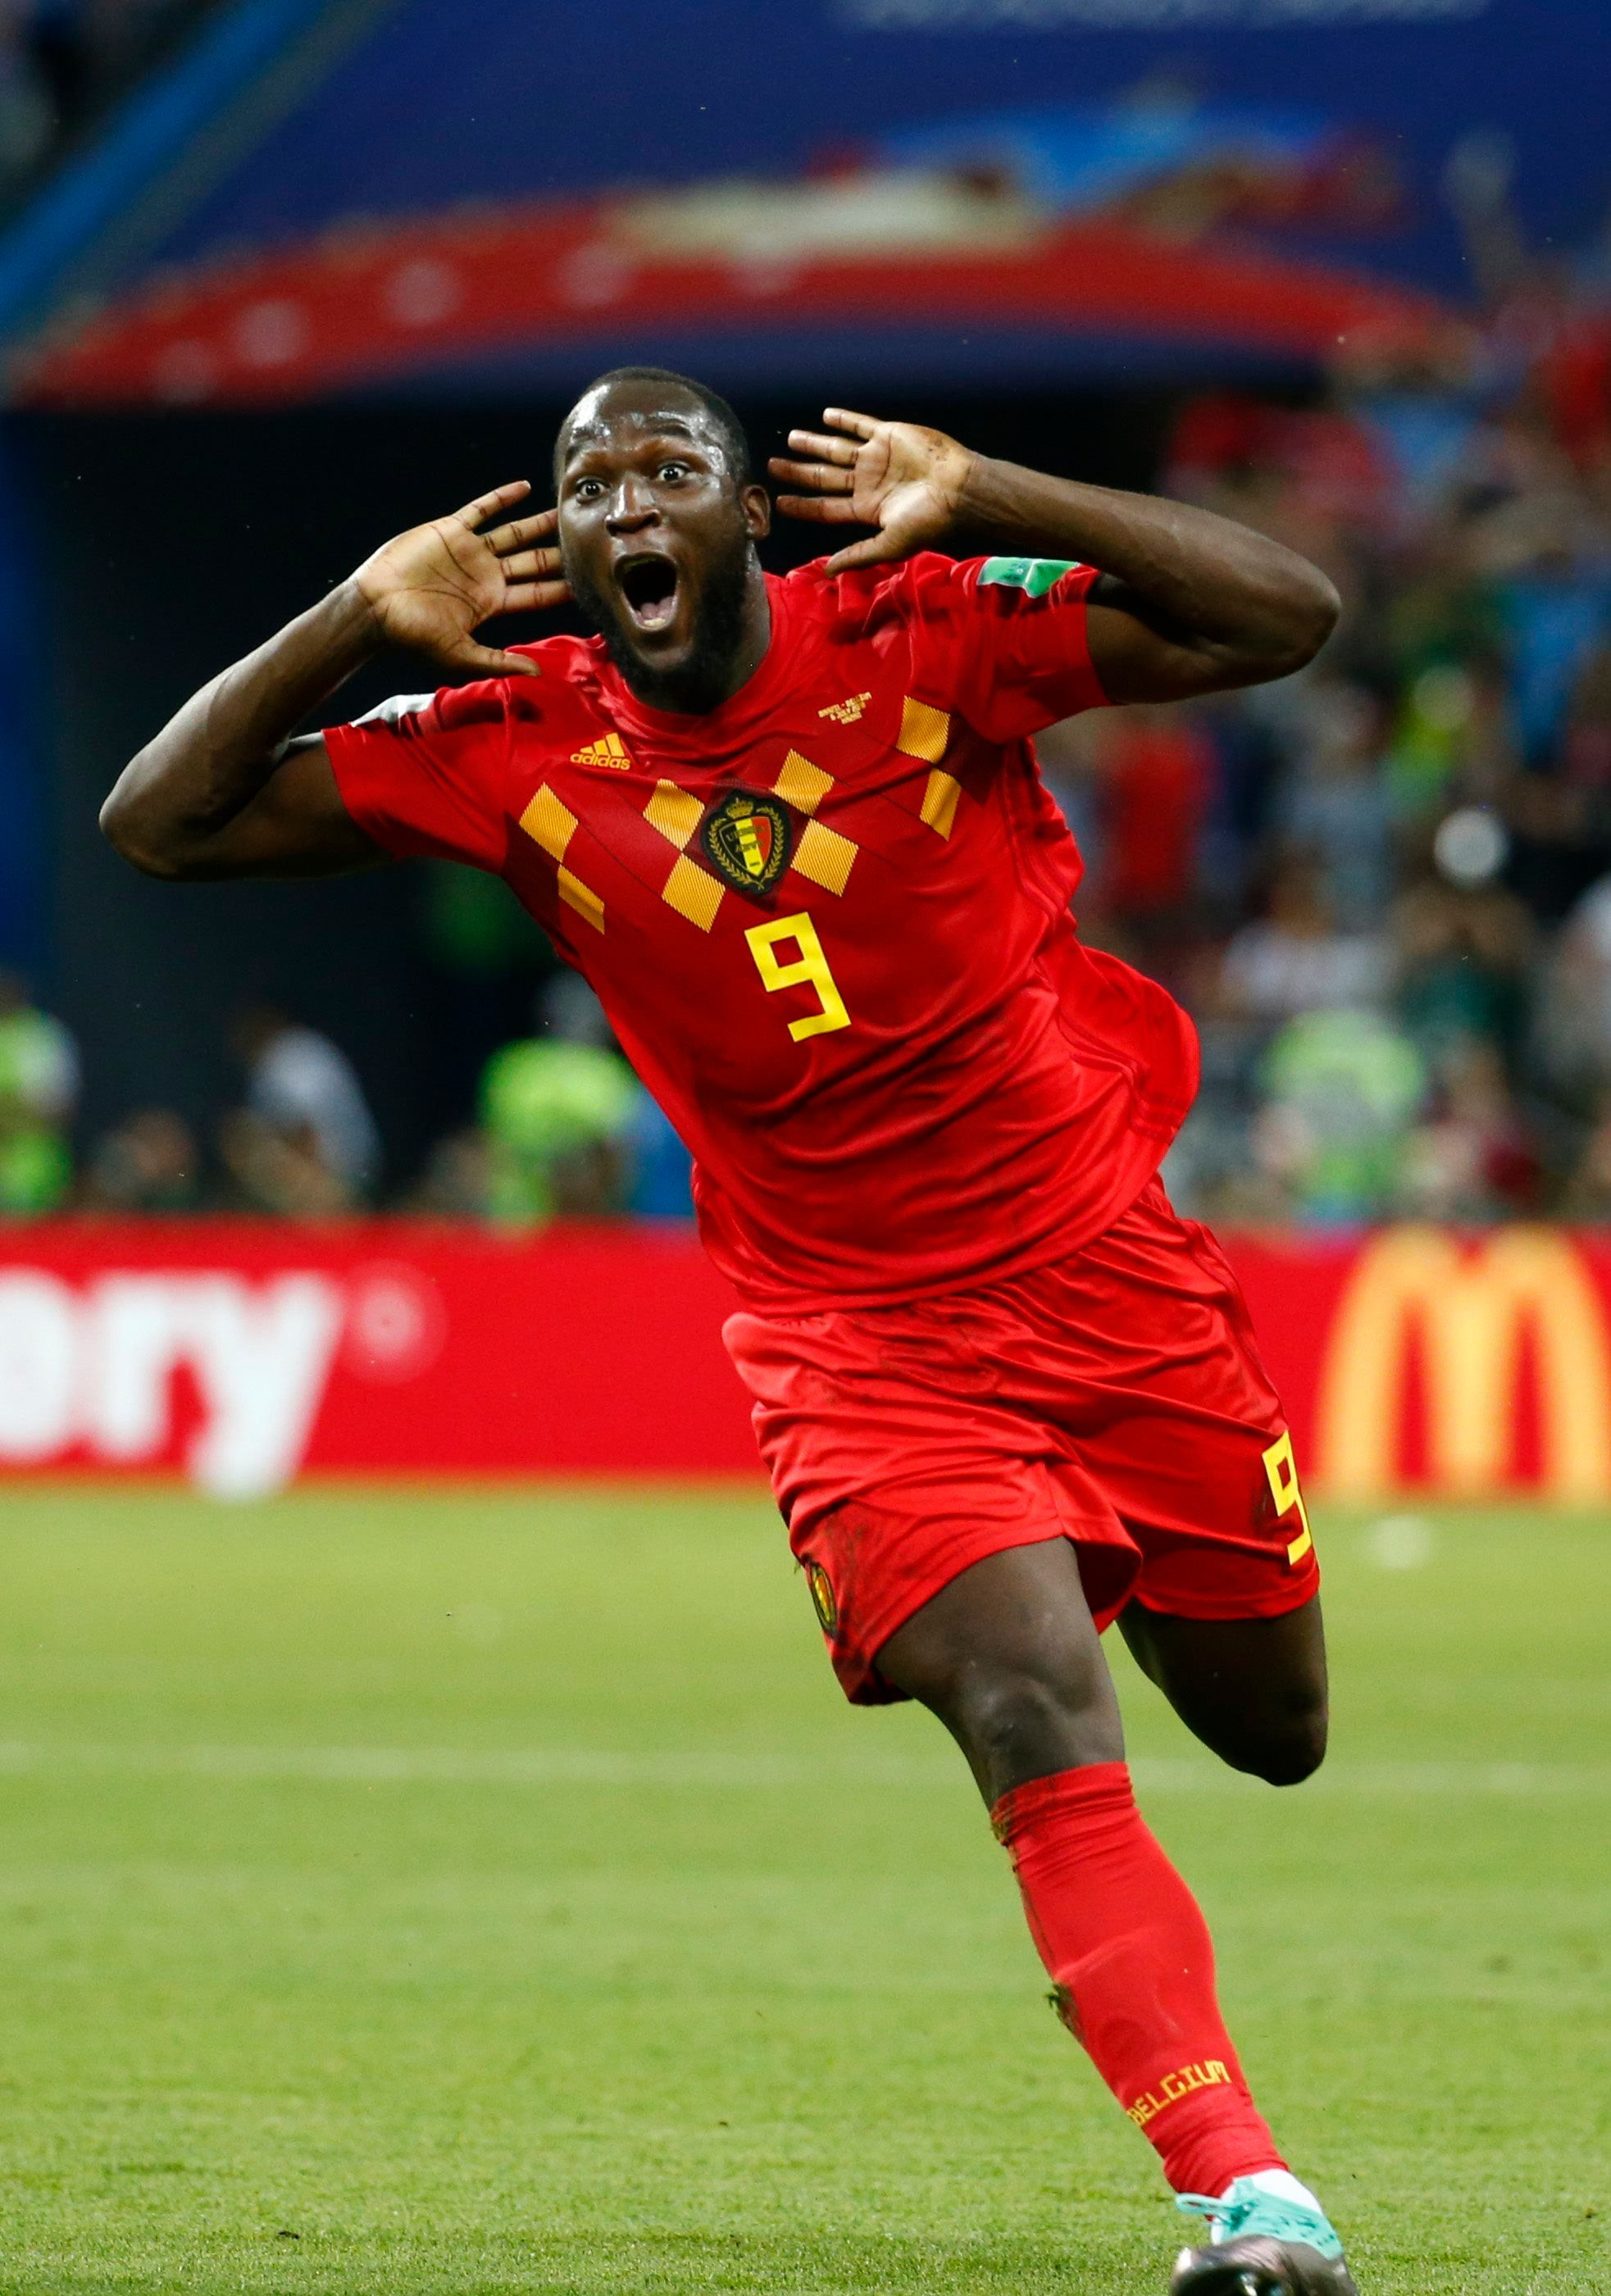 Kazan, Russia - July 6 : Romelu Lukaku forward of Belgium during the FIFA 2018 World Cup Russia Quarter-final match between Brazil and Belgium at the Kazan Arena Stadium on July 6, 2018 in Kazan, Russia, 6/07/2018 ( Photo by Jimmy Bolcina / Photonews  via Getty Images)